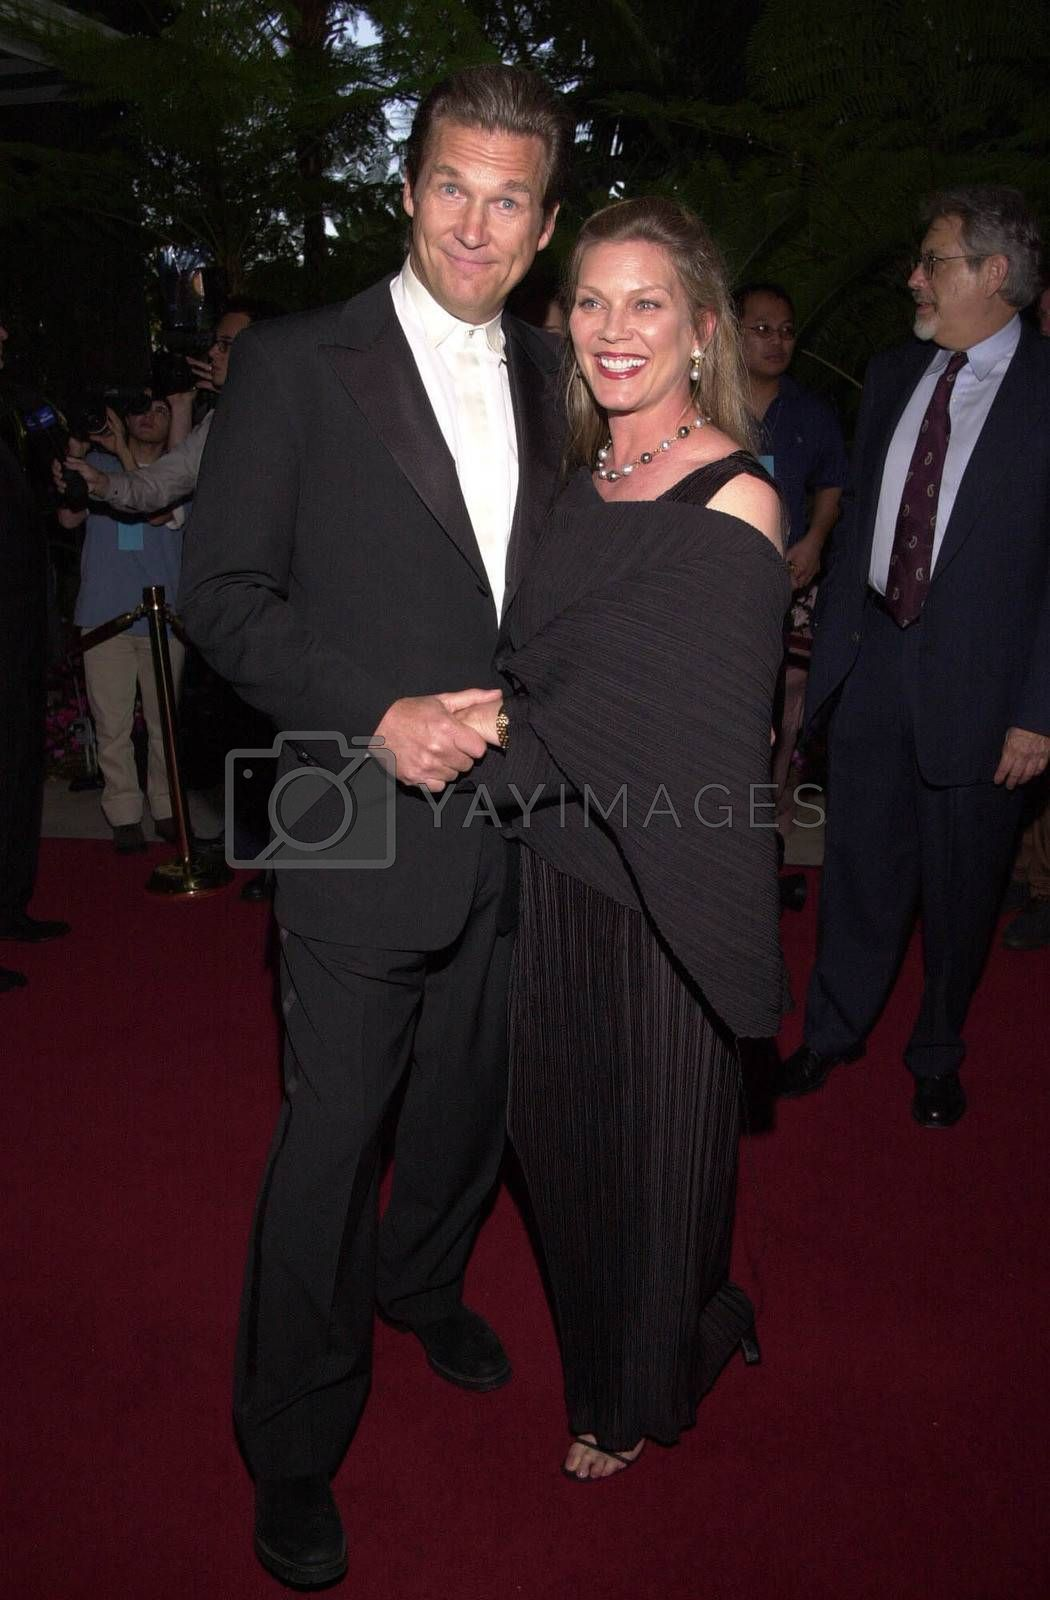 Jeff and Susan Bridges at the 4th Annual Raul Julia Ending Hunger Fund Benefit, Beverly Hills, 04-30-00